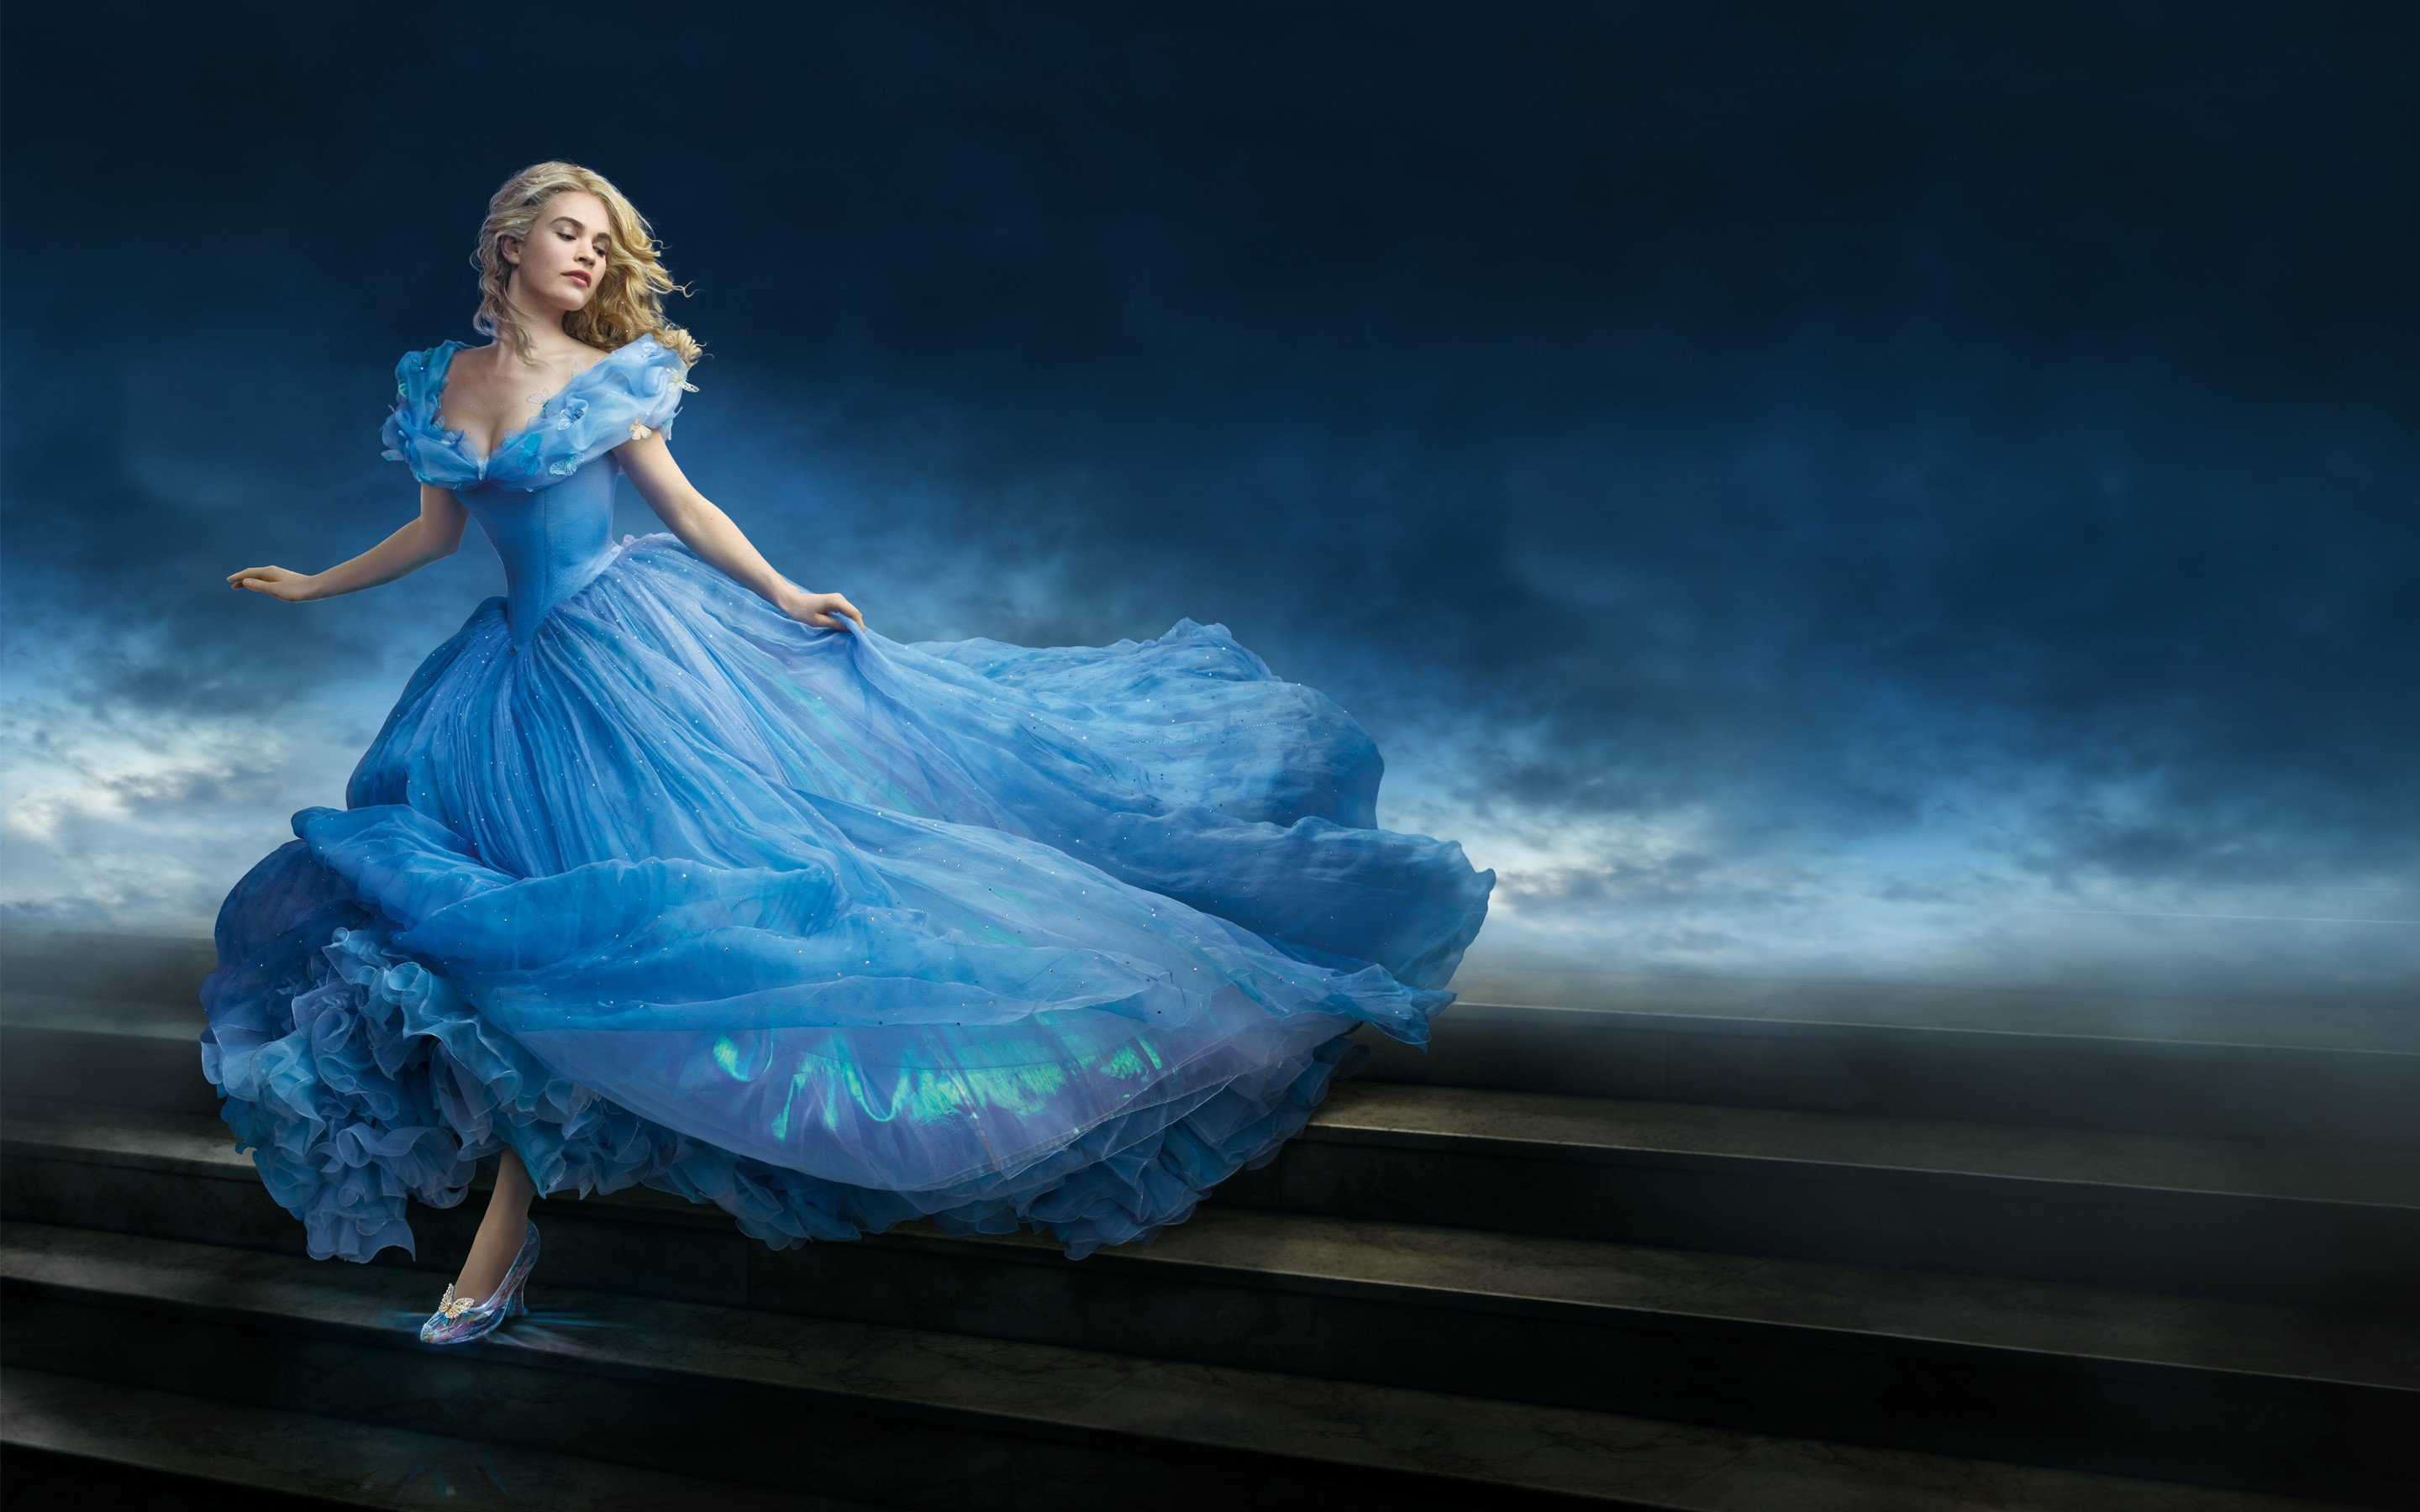 Little Princess Girl Wallpaper 14 Hd Cinderella Movie Wallpapers